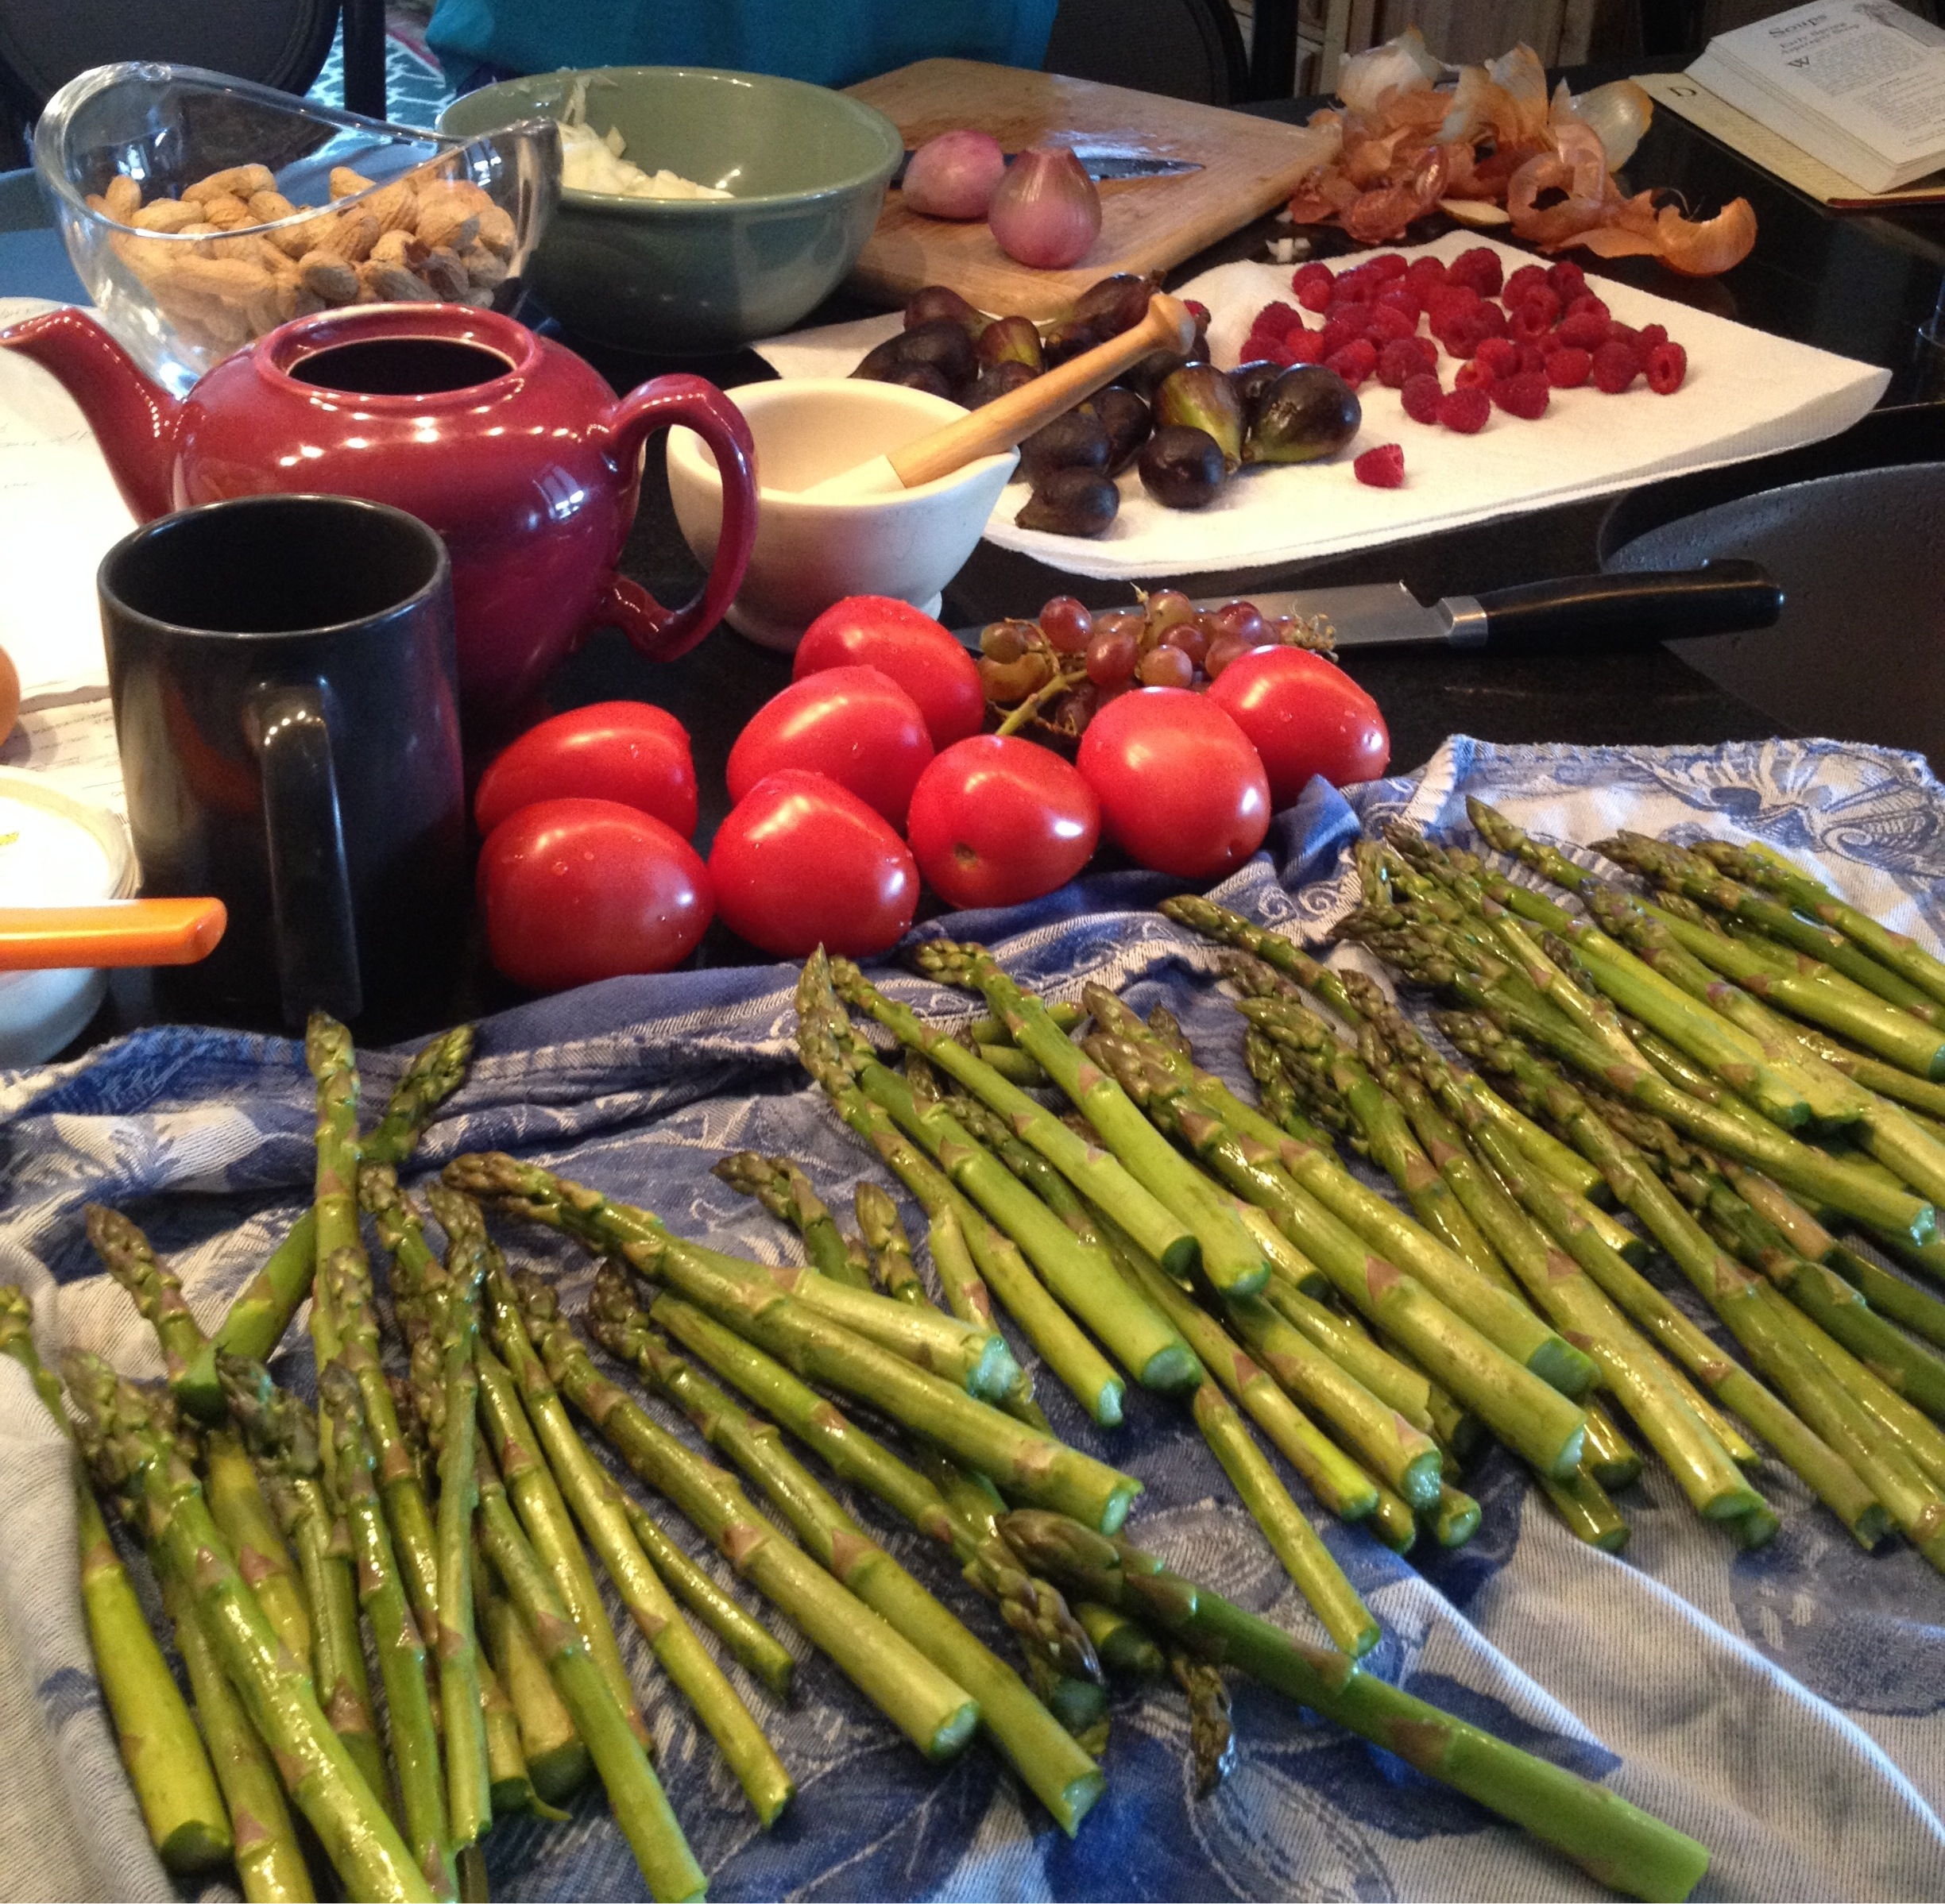 asparagus tomatoes figs raspberries shallots